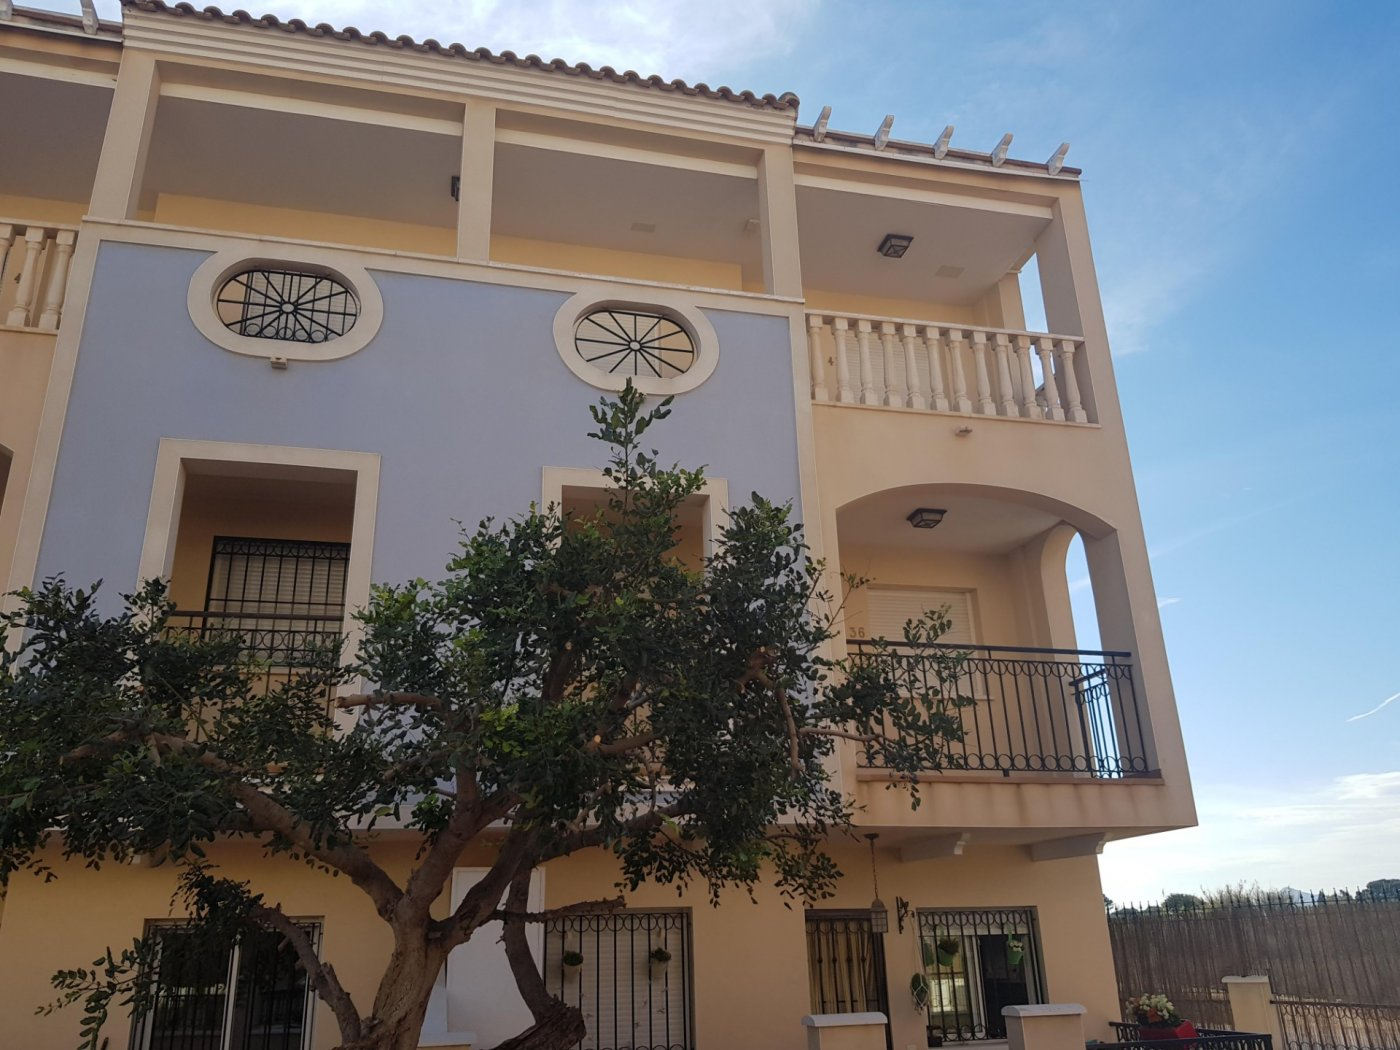 Gallery Image 2 of Fantastic corner apartment on walking distance of beach and shopping centre